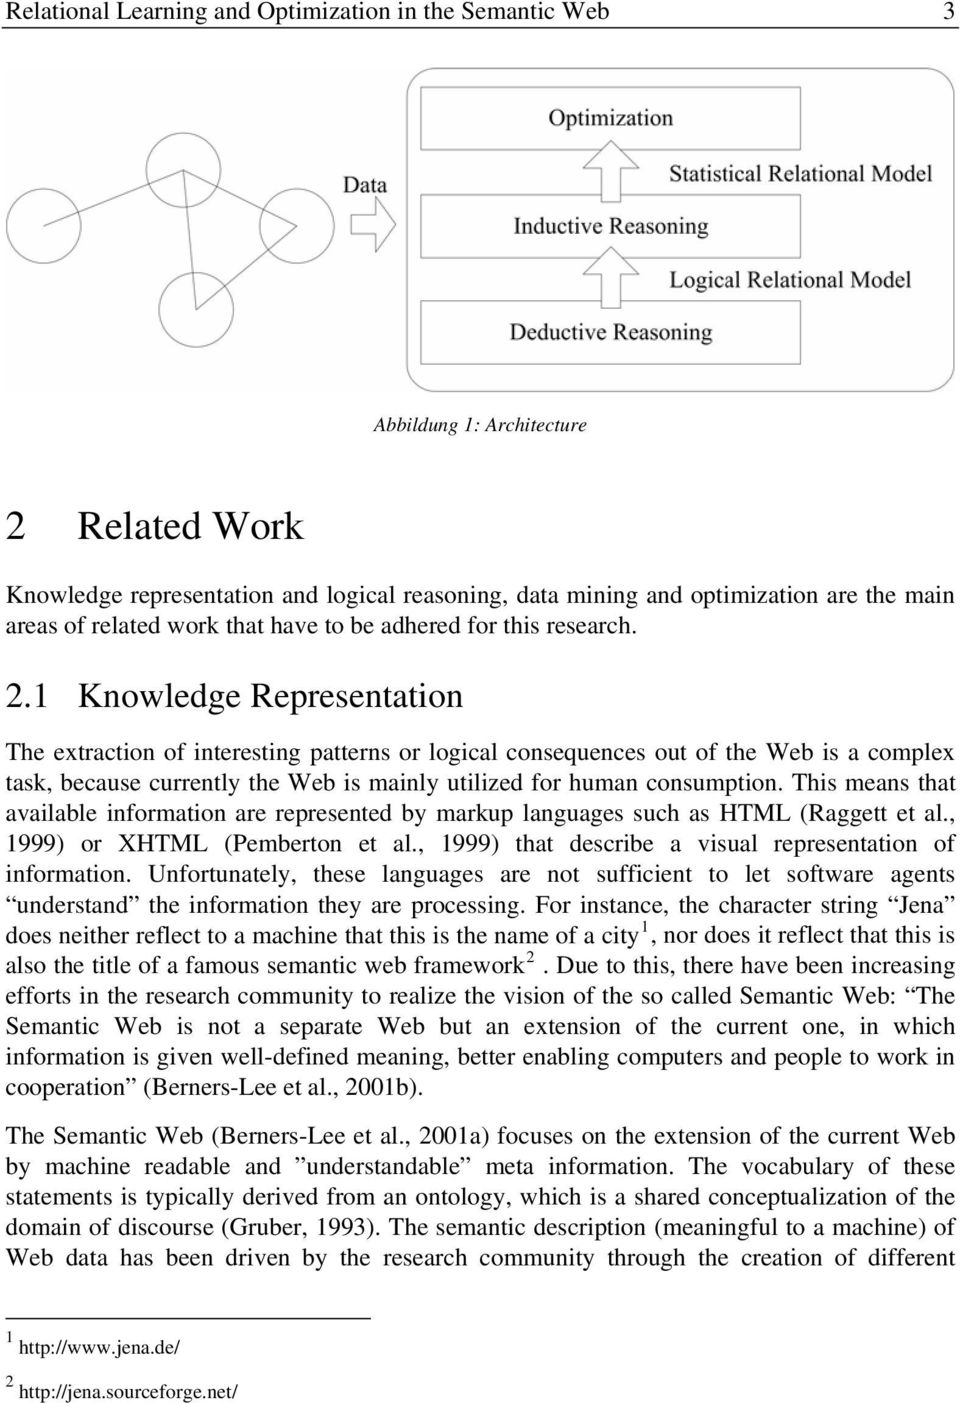 1 Knowledge Representation The extraction of interesting patterns or logical consequences out of the Web is a complex task, because currently the Web is mainly utilized for human consumption.